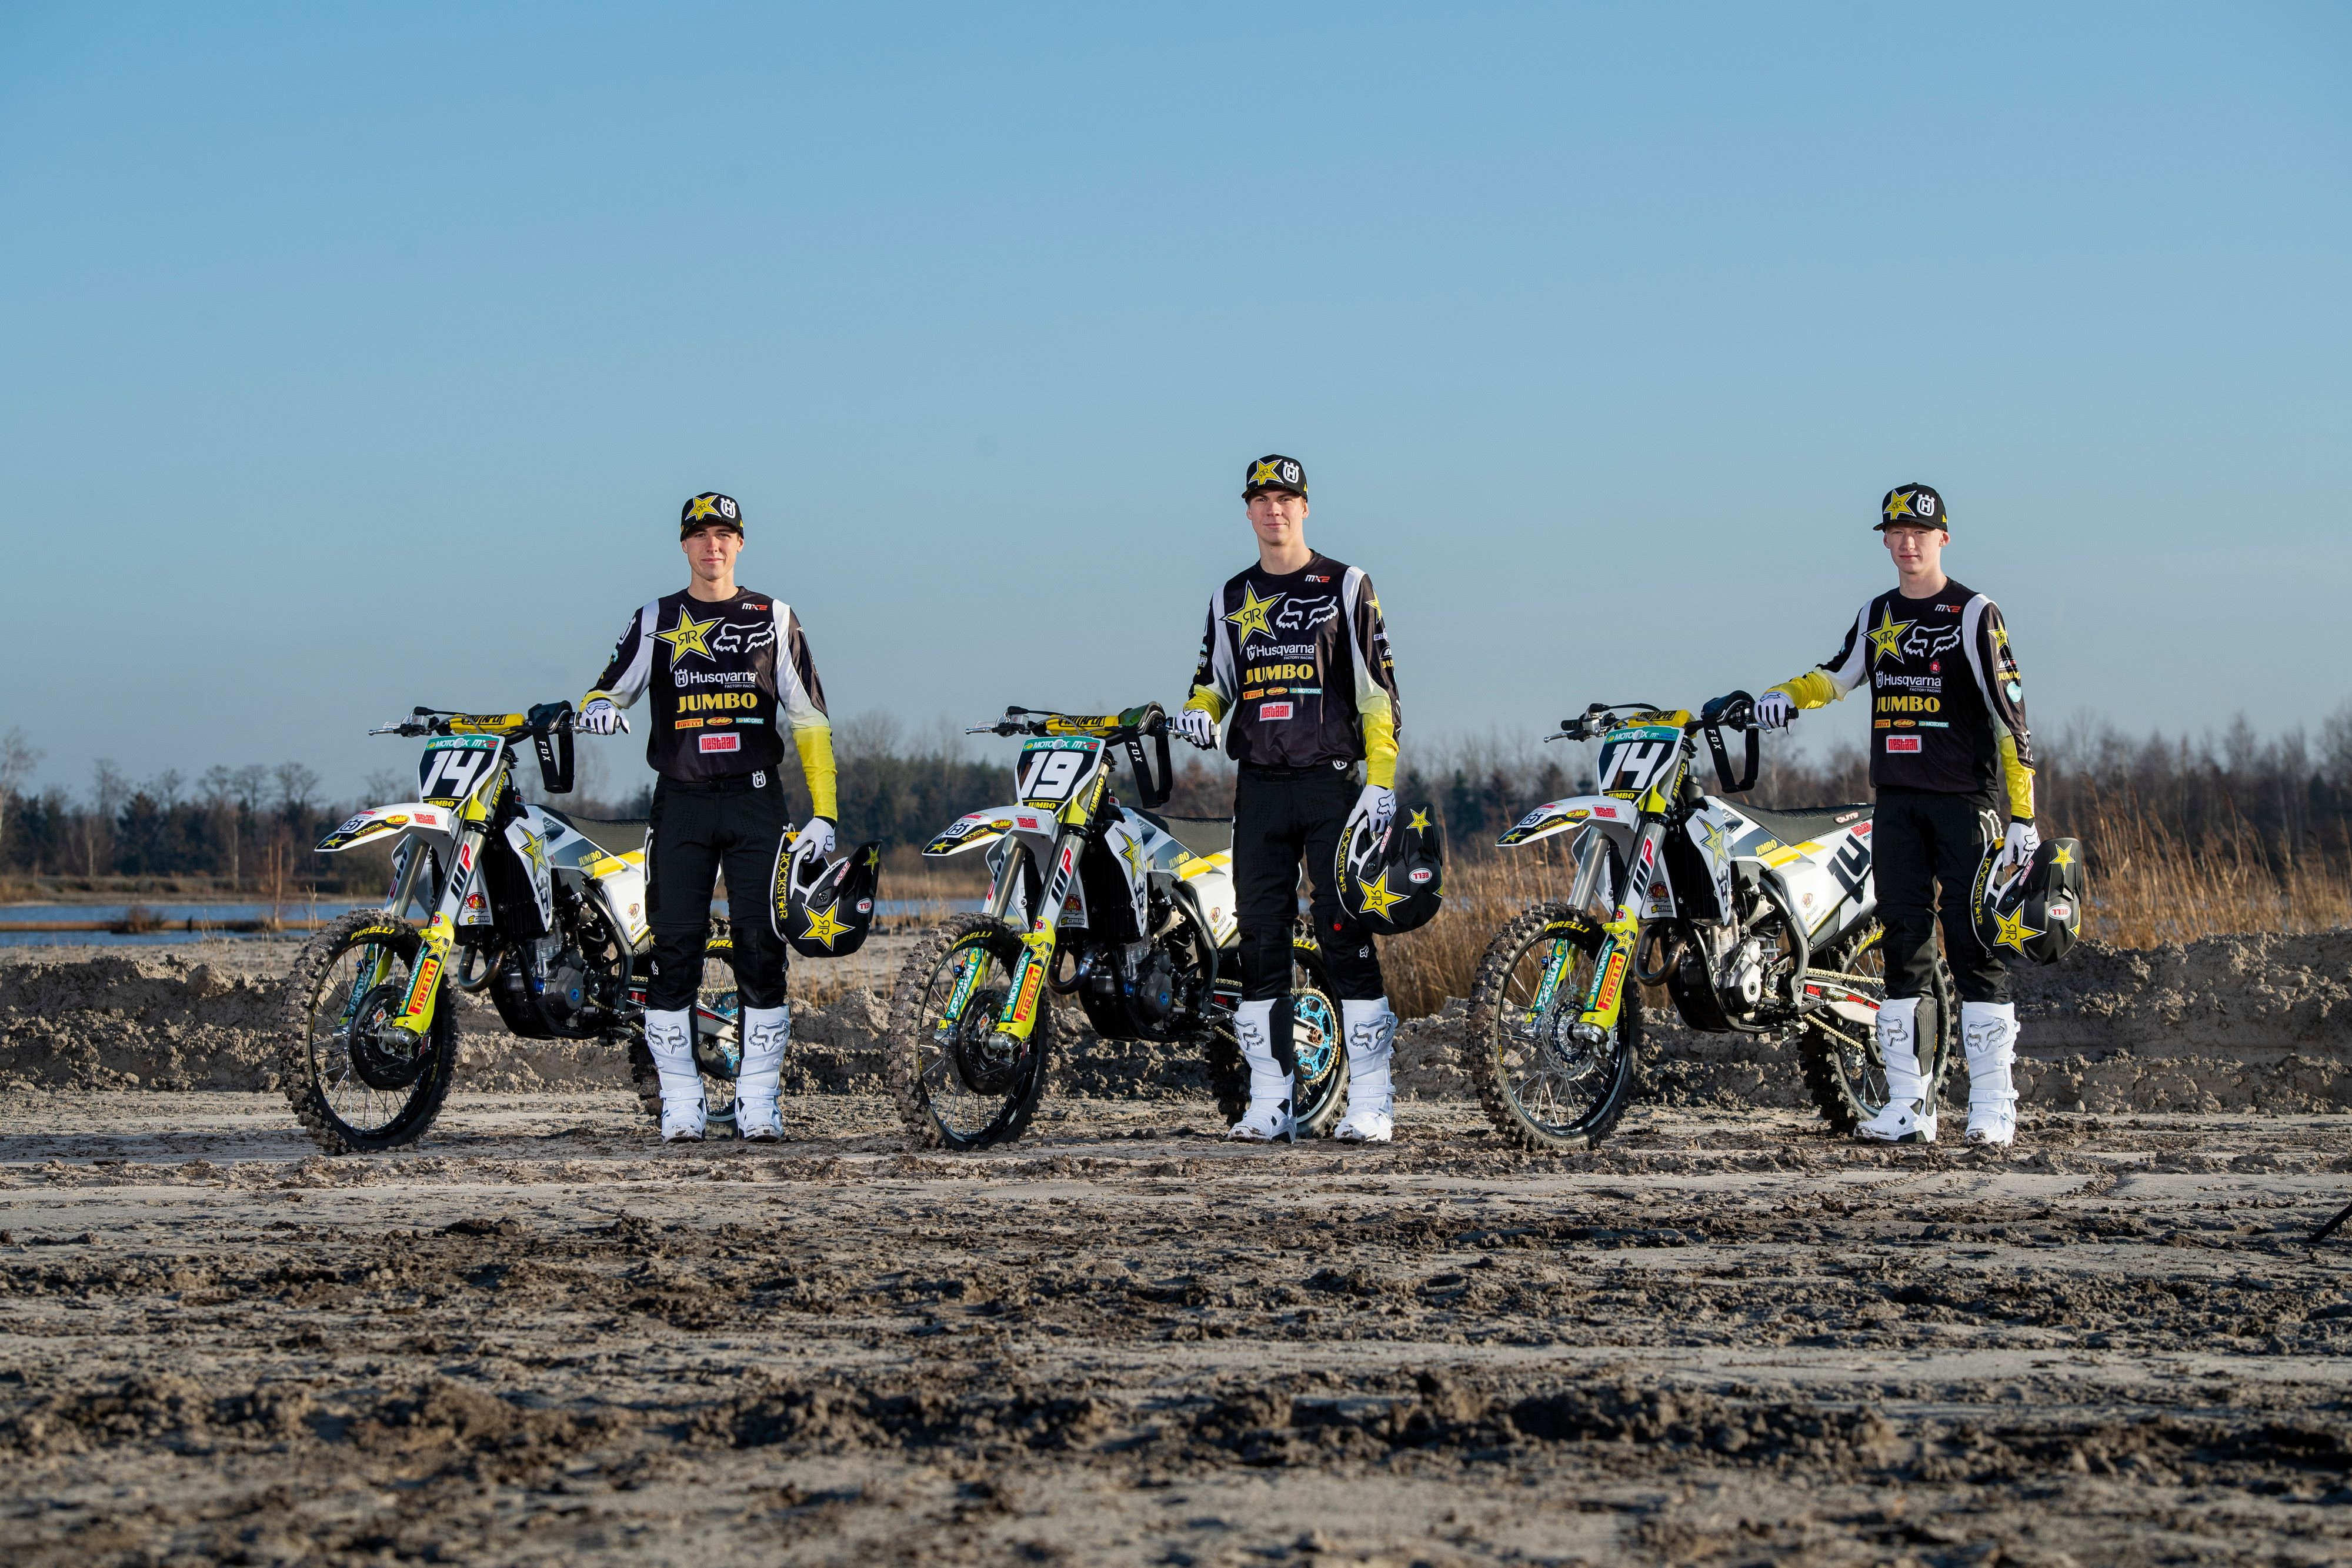 OFFICIAL IMAGERY – ROCKSTAR ENERGY HUSQVARNA FACTORY RACING 2020 MX2 TEAM